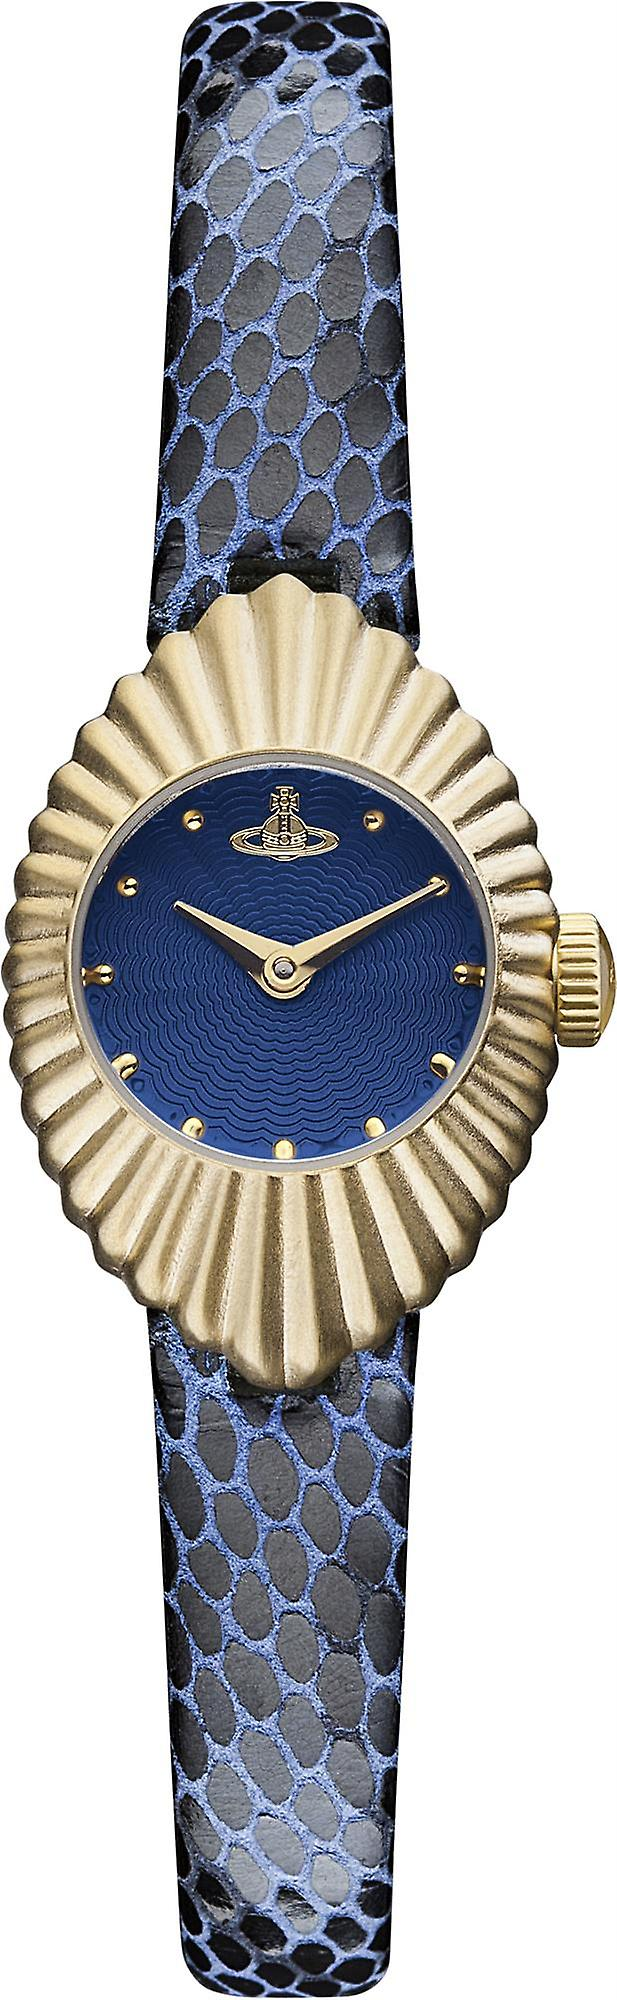 Vivienne Westwood PVD Gold Plated Case Blue Leather Strap Ladies Watch VV096NVNV 21mm